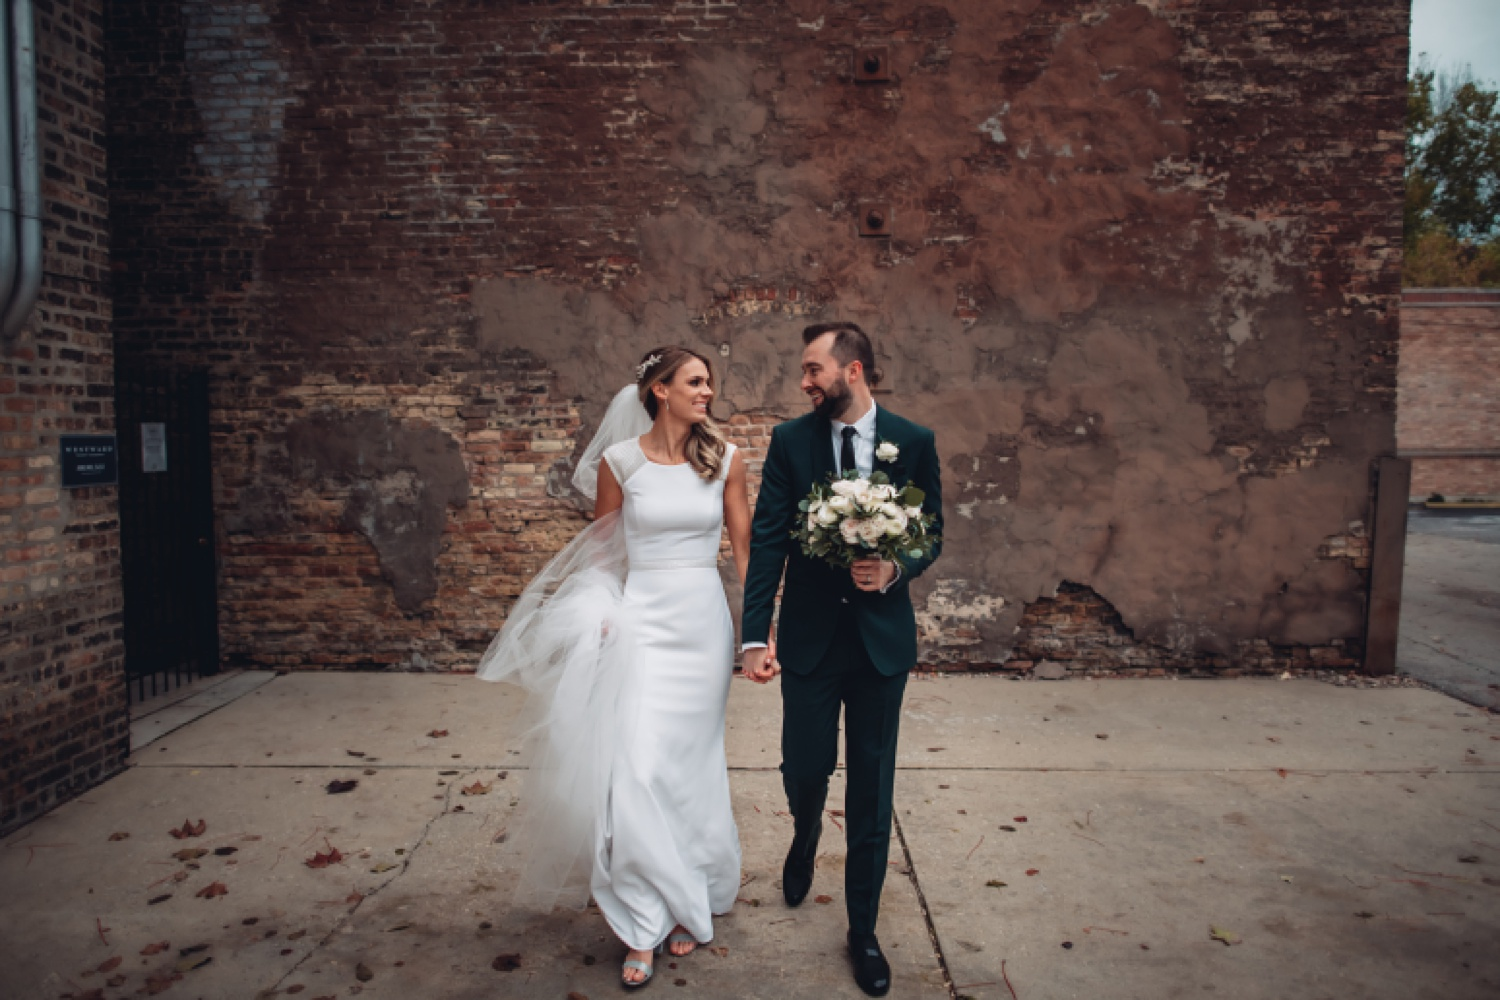 Artifact Events Chicago Wedding - The Adamkovi bride and groom portraits, chicago alley